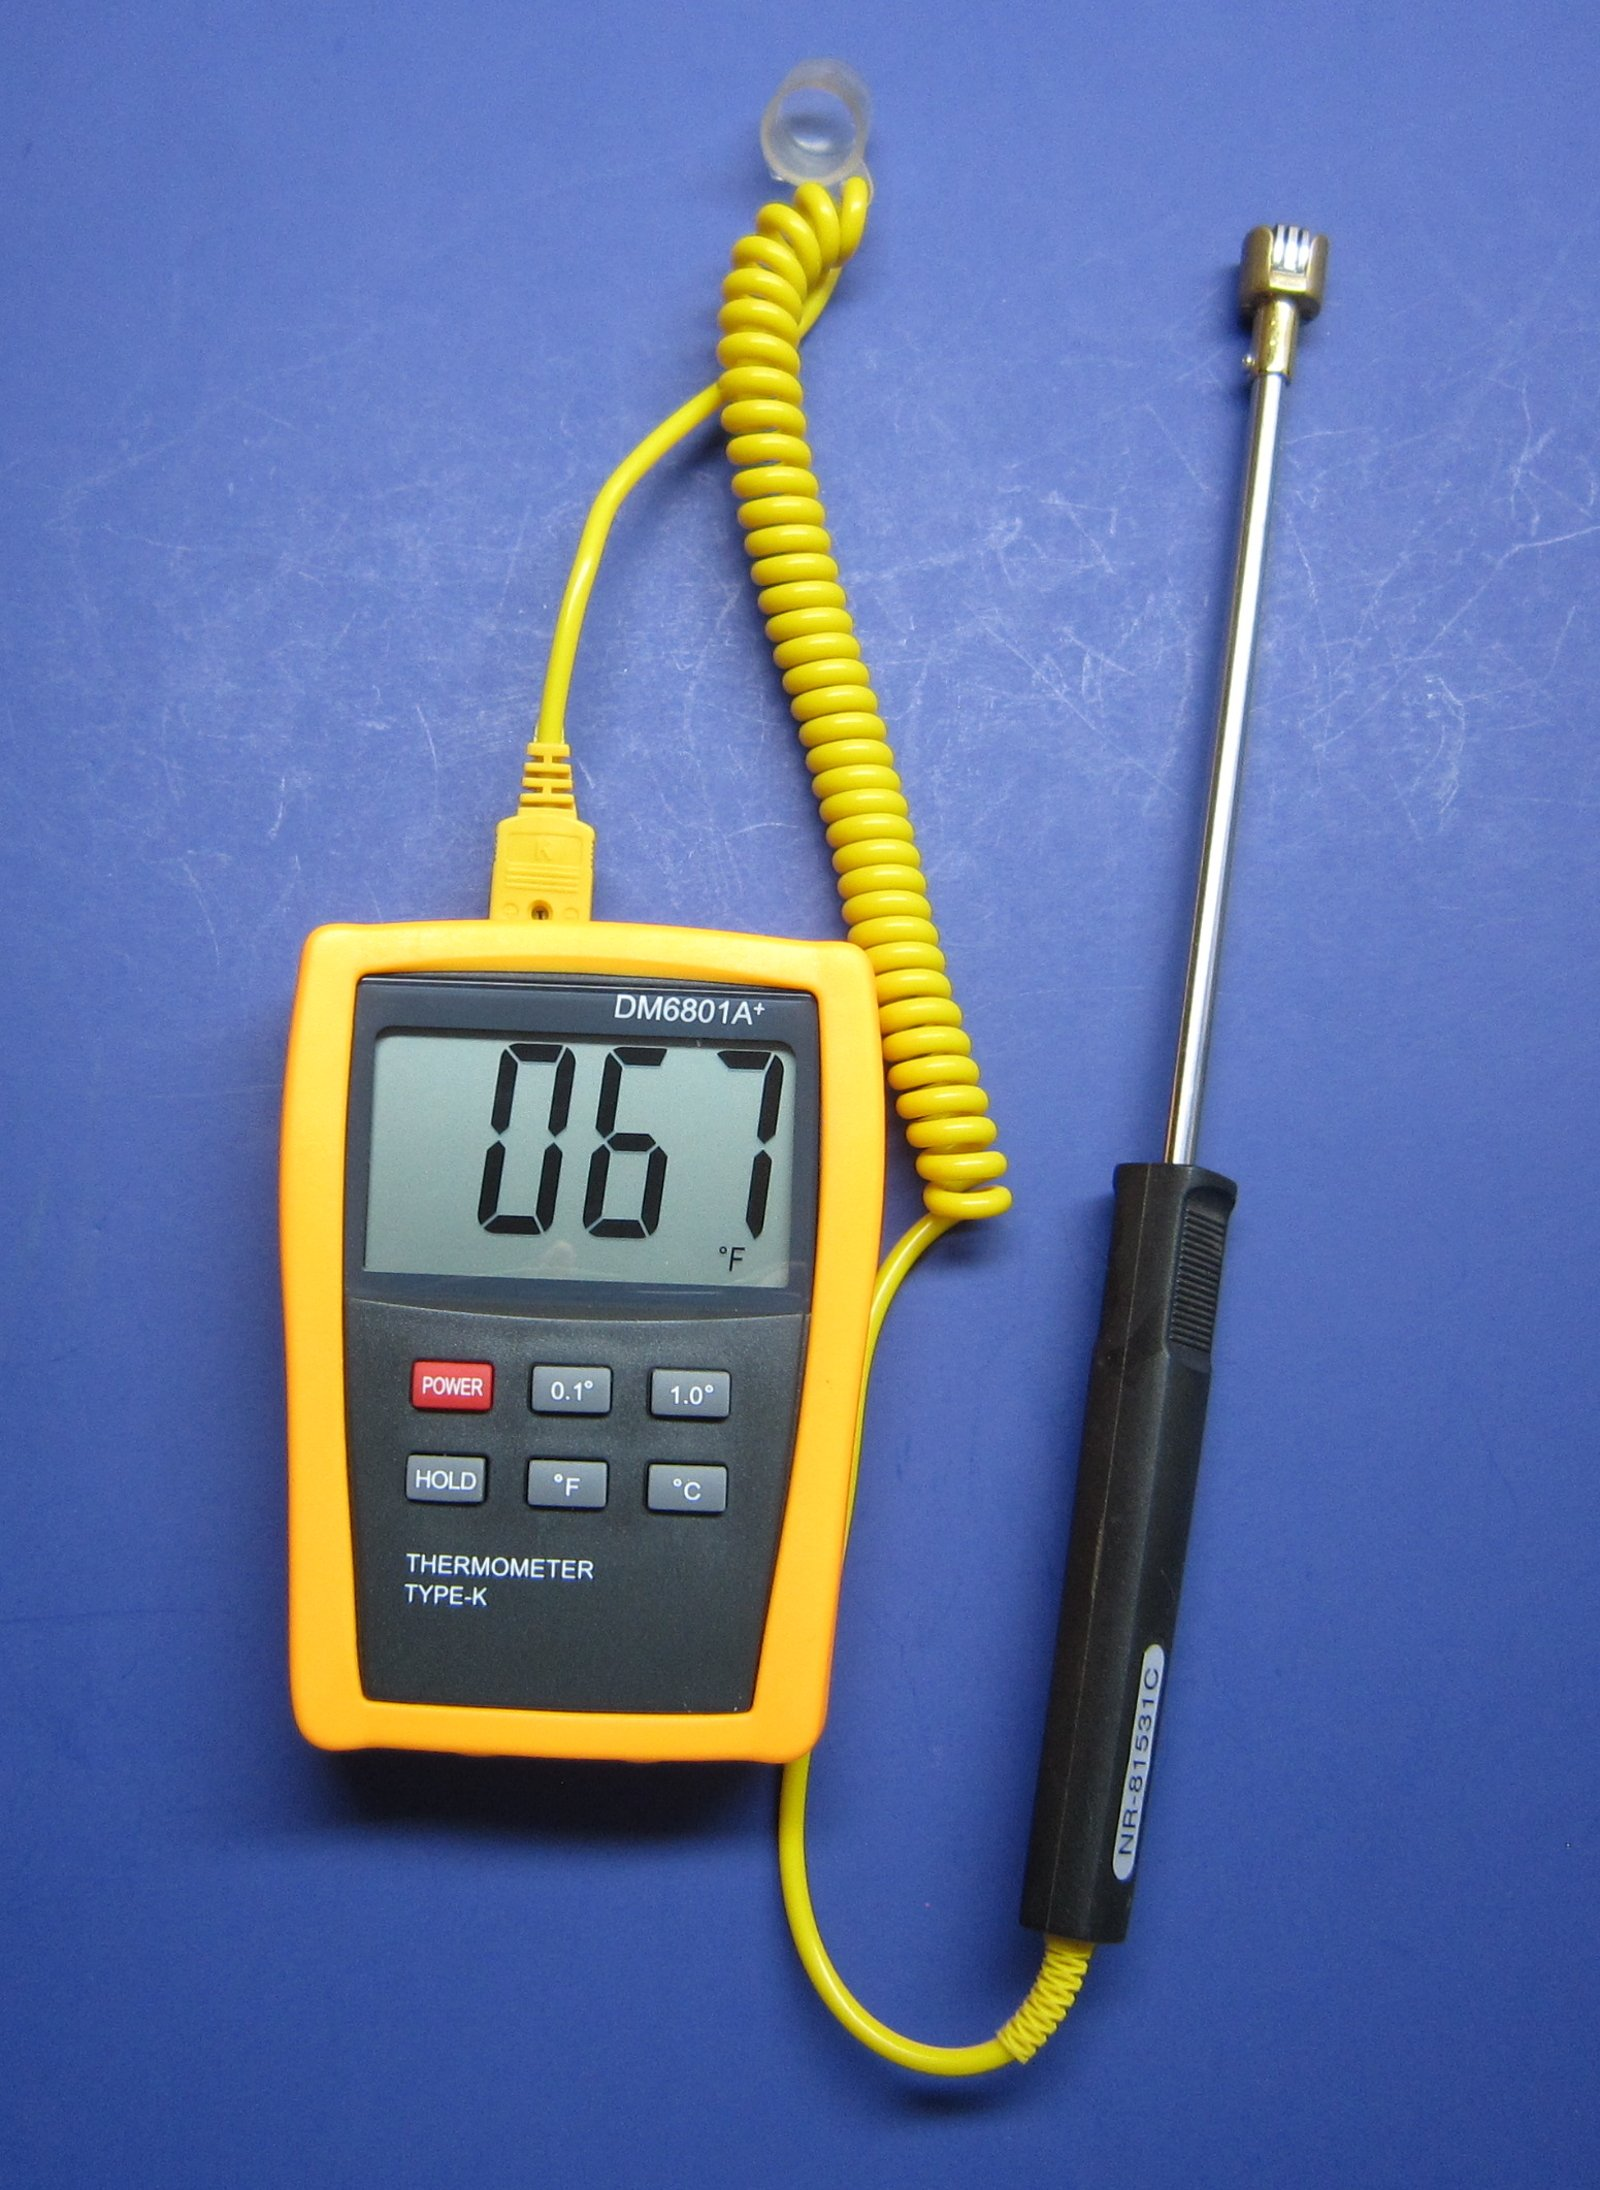 Digital Welding and Metalworking Thermometer with K-type Surface Thermocouple